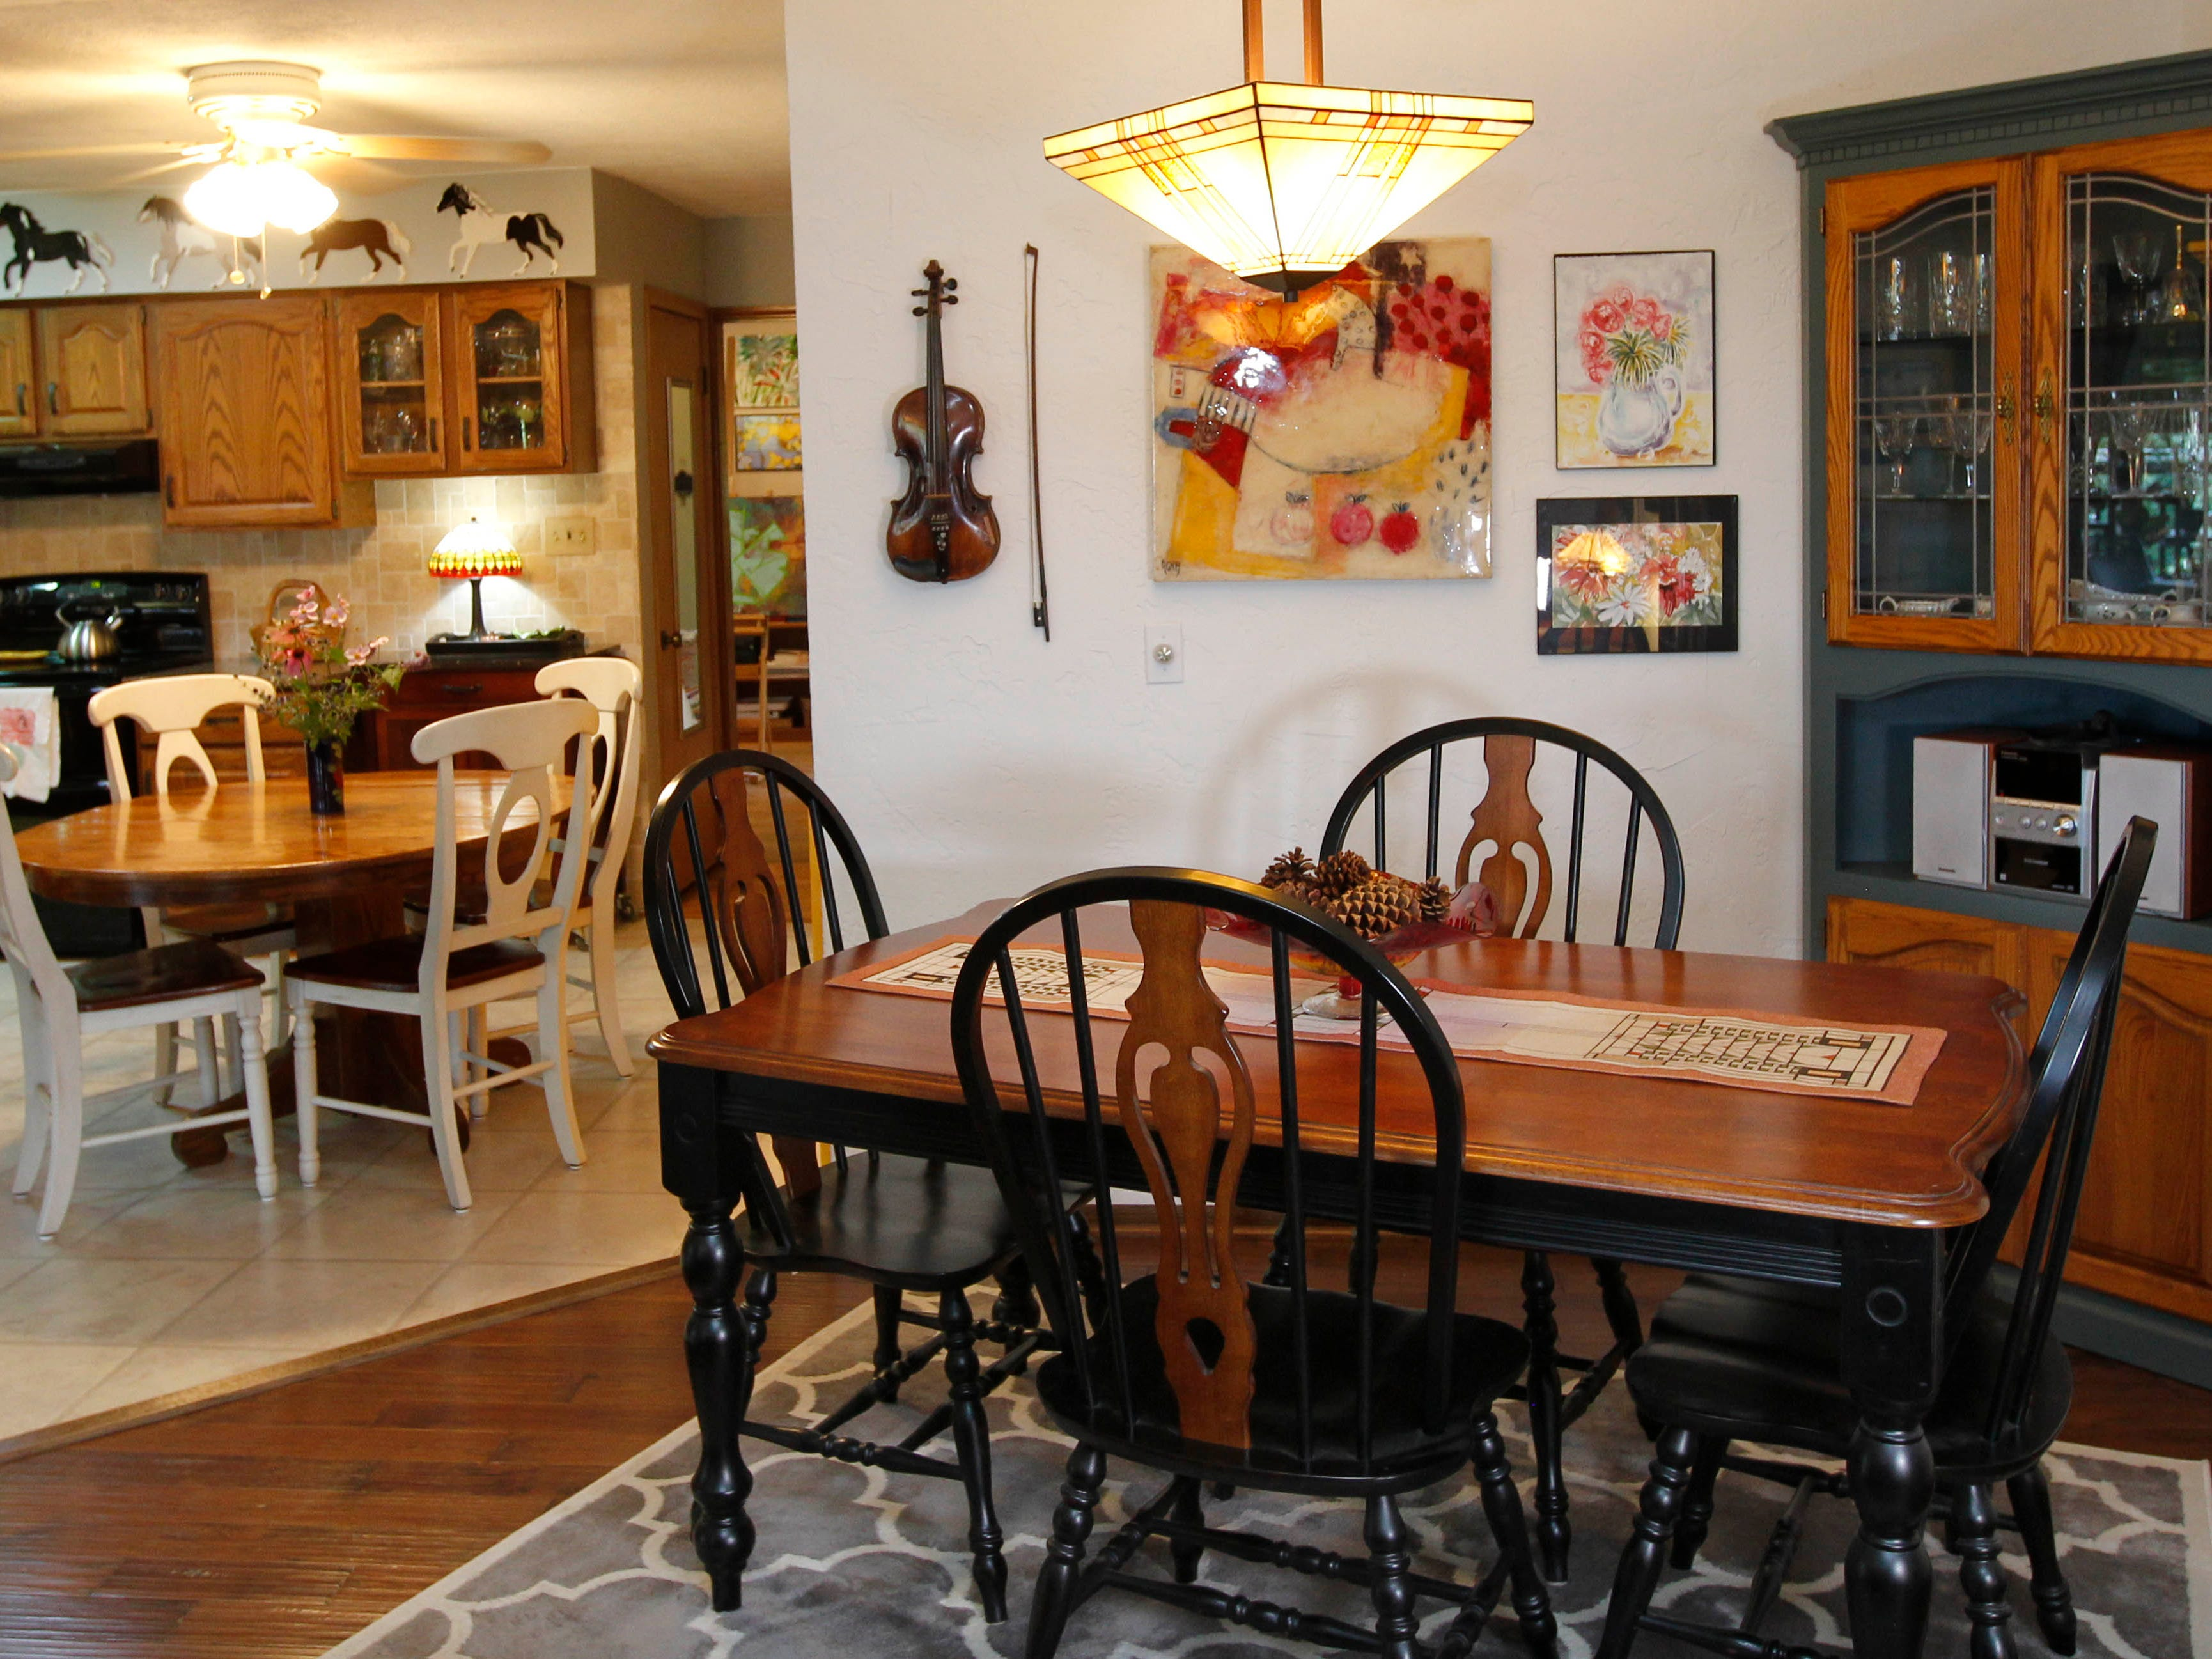 The kitchen and dining room both offer opportunities for dining.